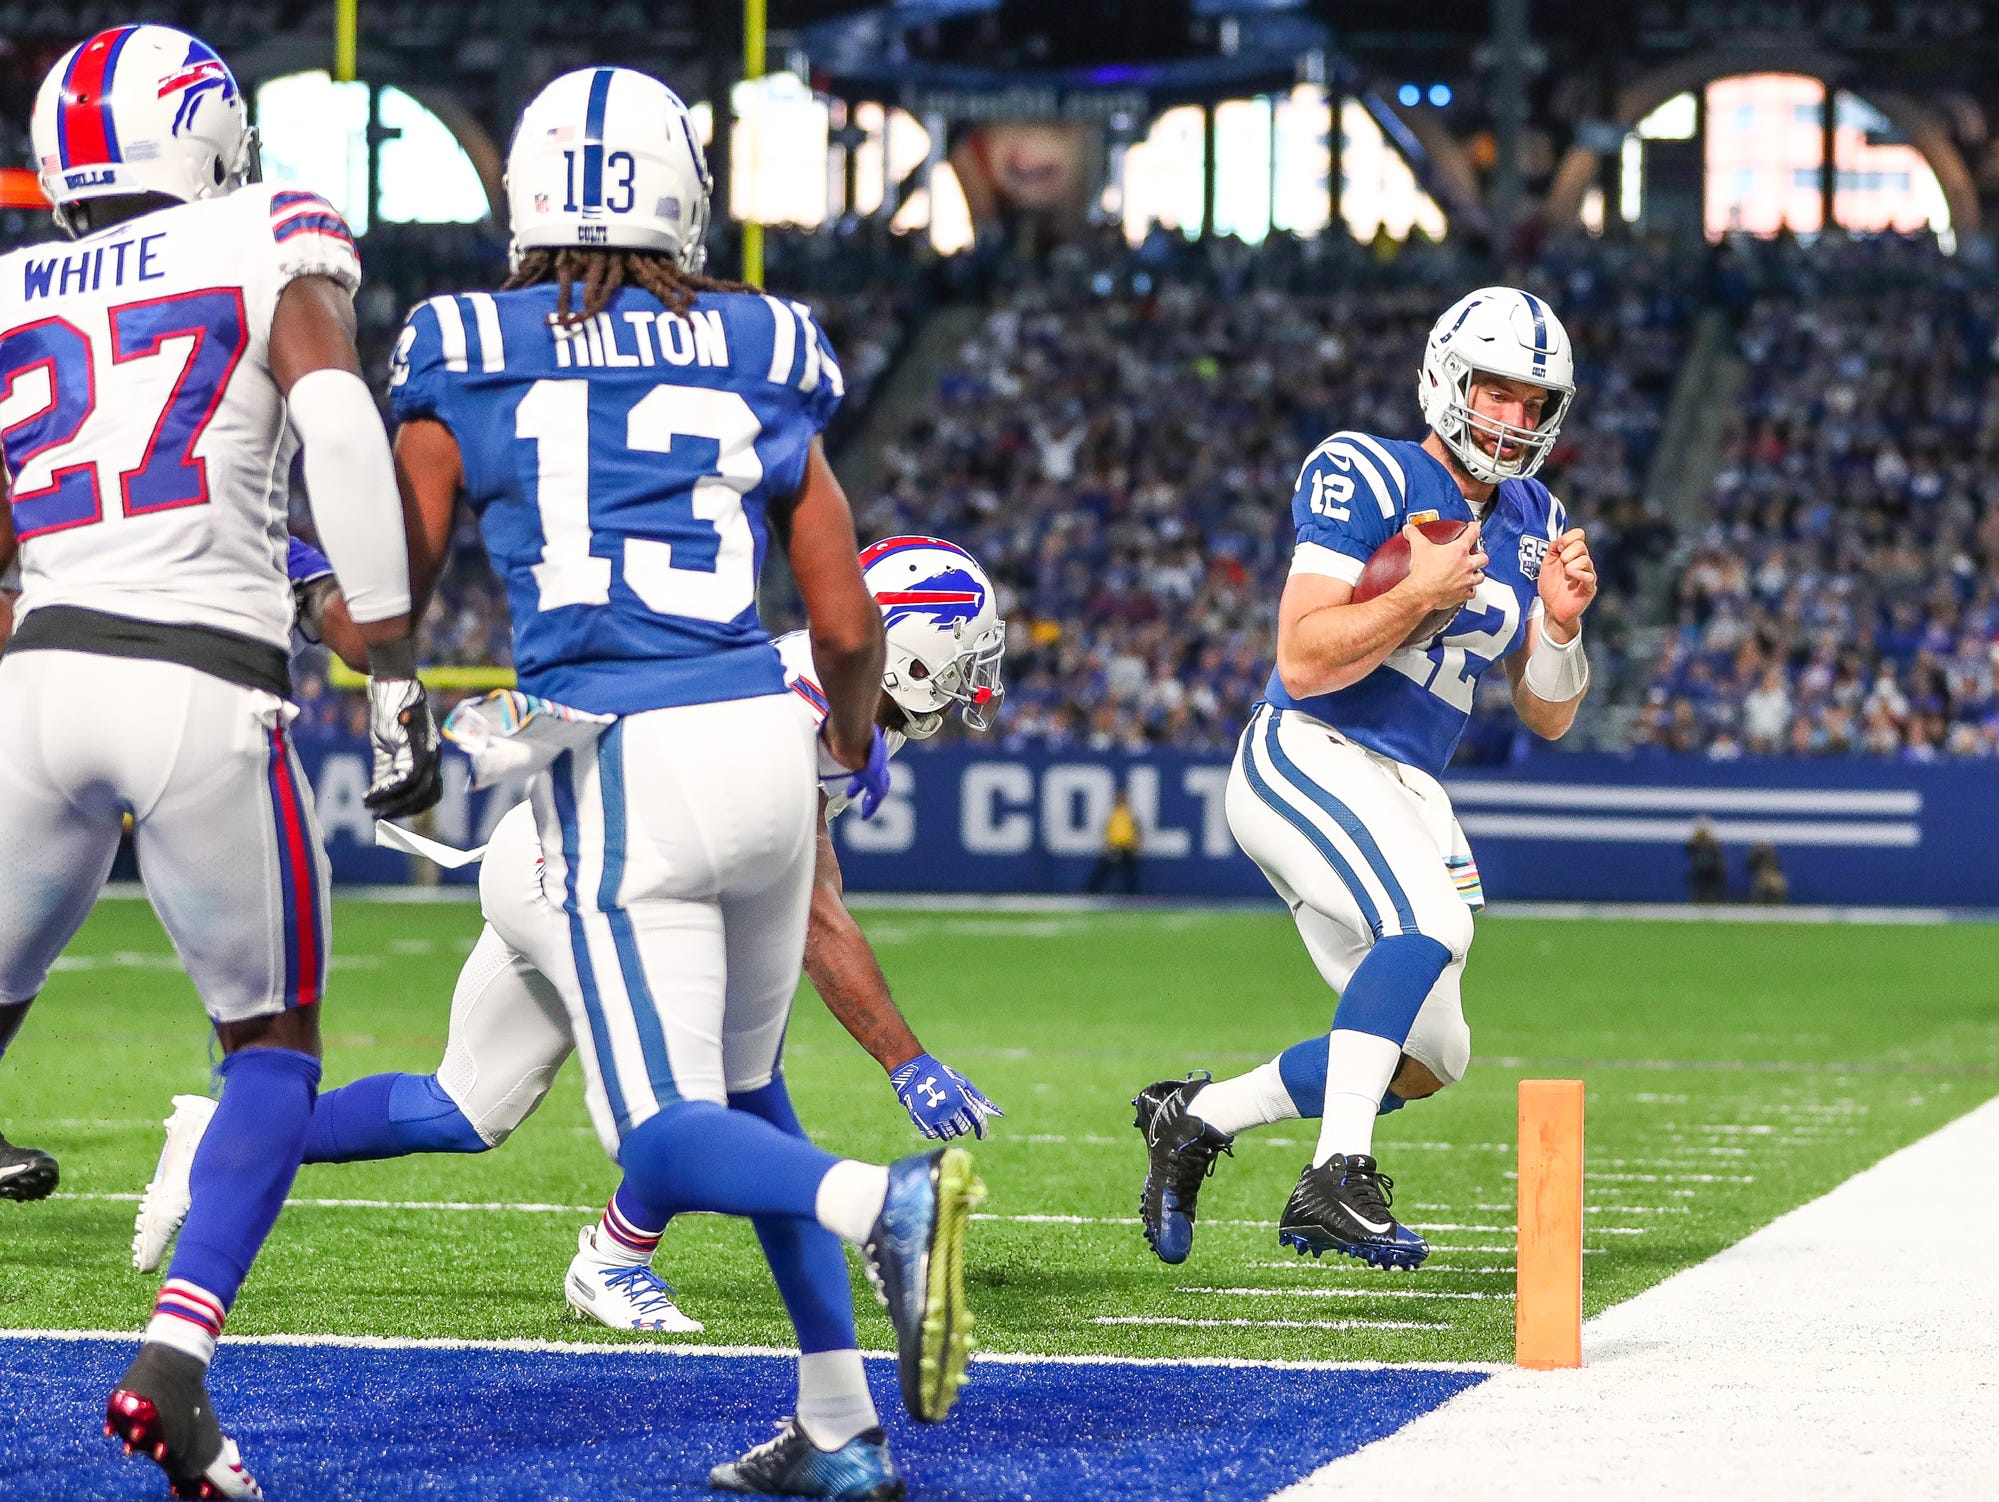 Indianapolis Colts quarterback Andrew Luck (12) steps out of bounds at the one yard line late in the game against the Buffalo Bills at Lucas Oil Stadium on Sunday, Oct. 21, 2018.